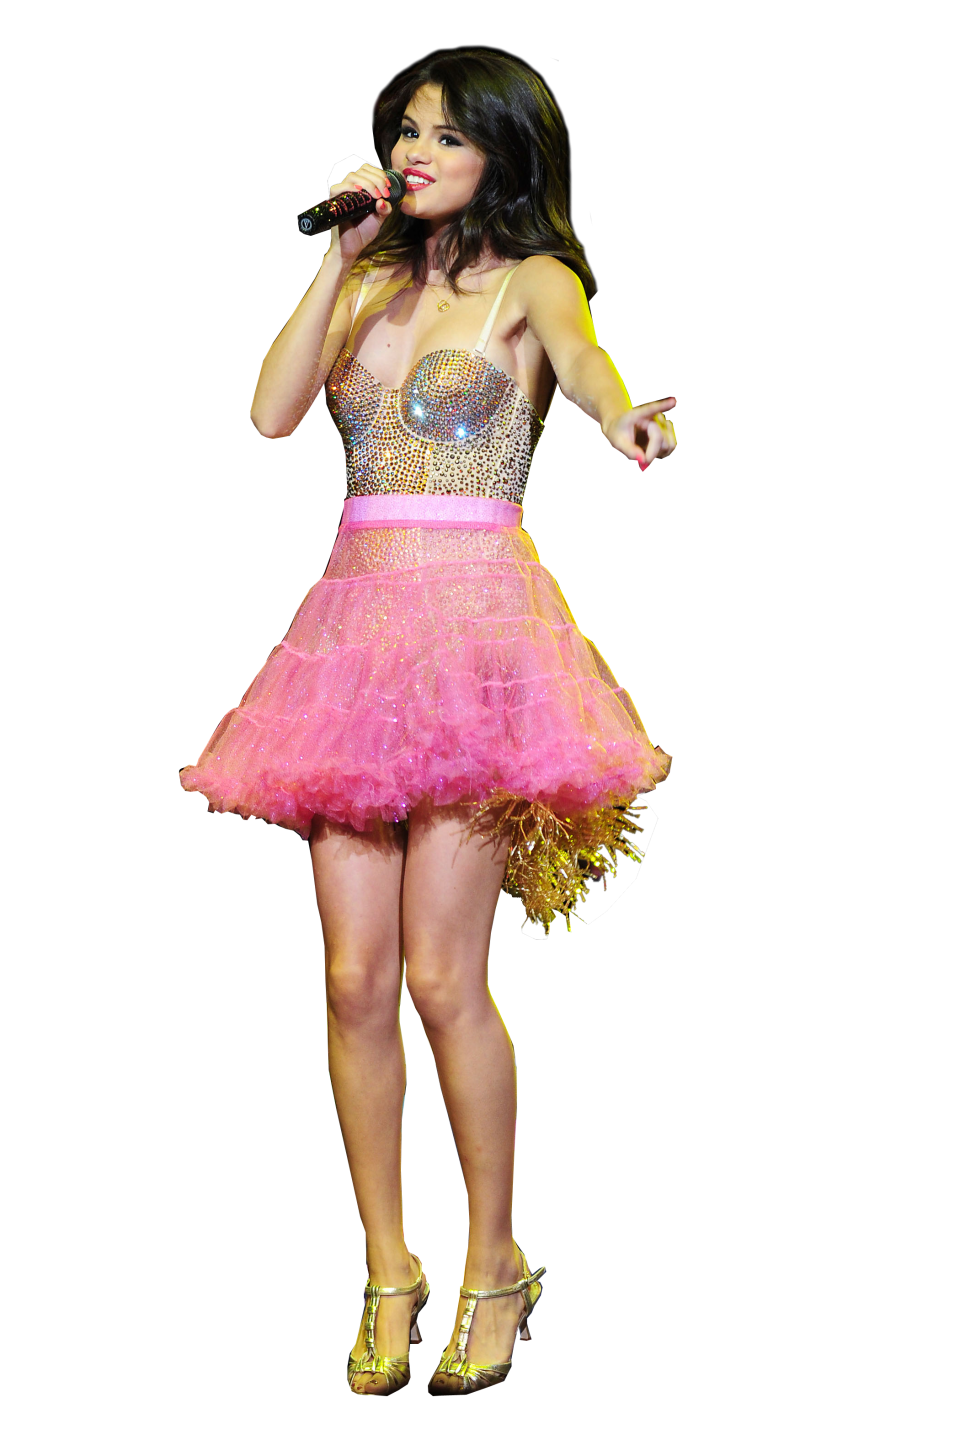 Selena Gomez on Stage PNG Image